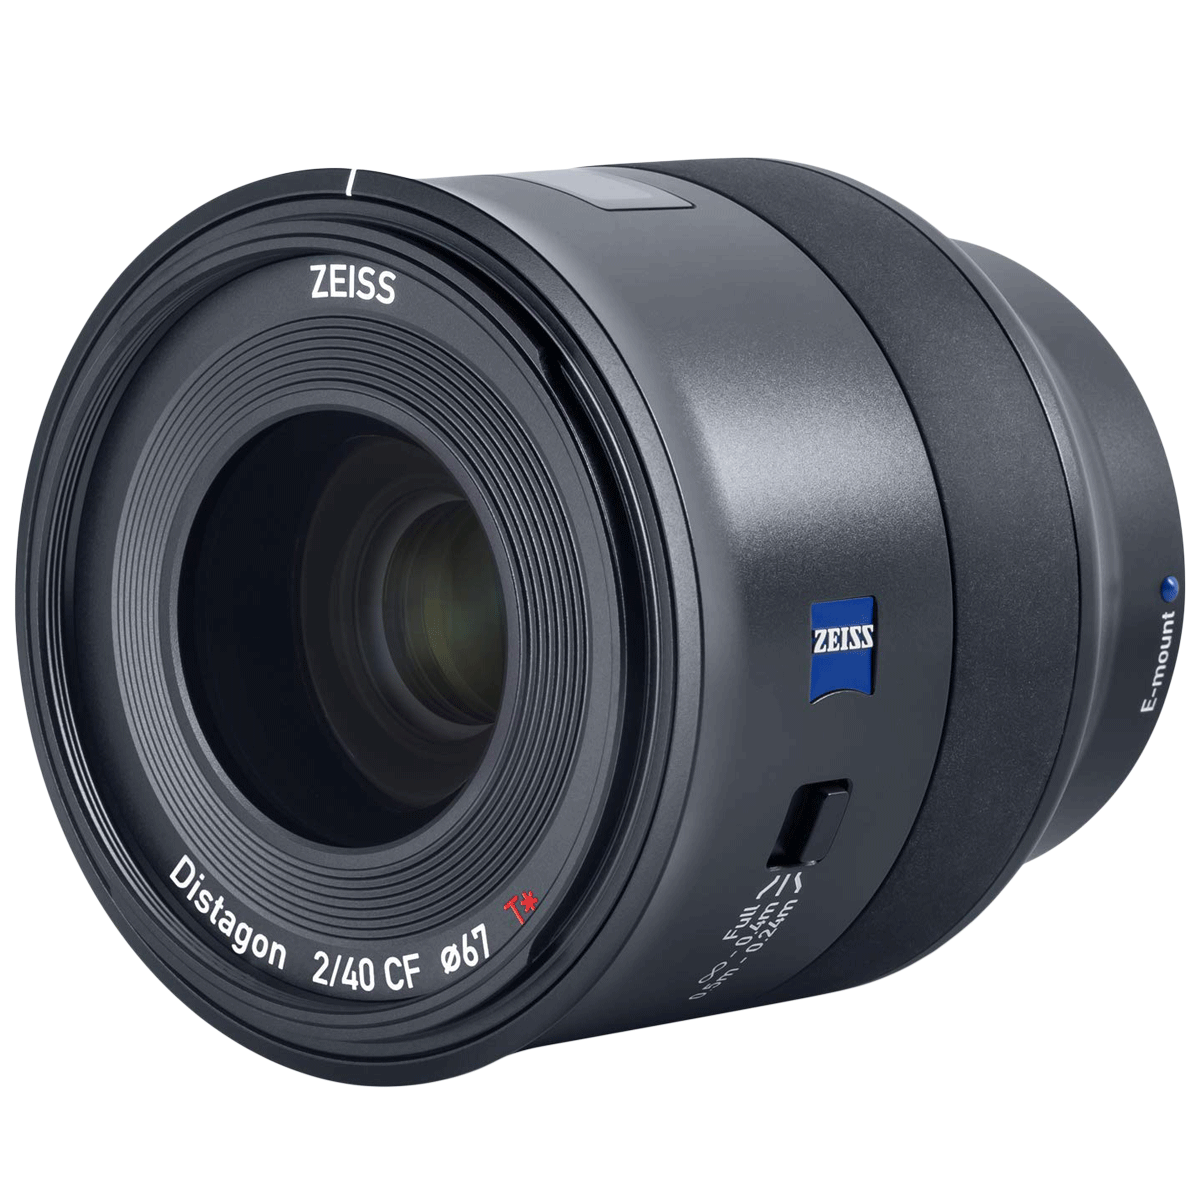 Carl Zeiss Batis 40 mm f/2.0 – f/22 Wide Angle Lens for Sony E-Mount Mirrorless and Full Frame Cameras (Weather and Dust Sealing, 000000-2239-137, Black)_1